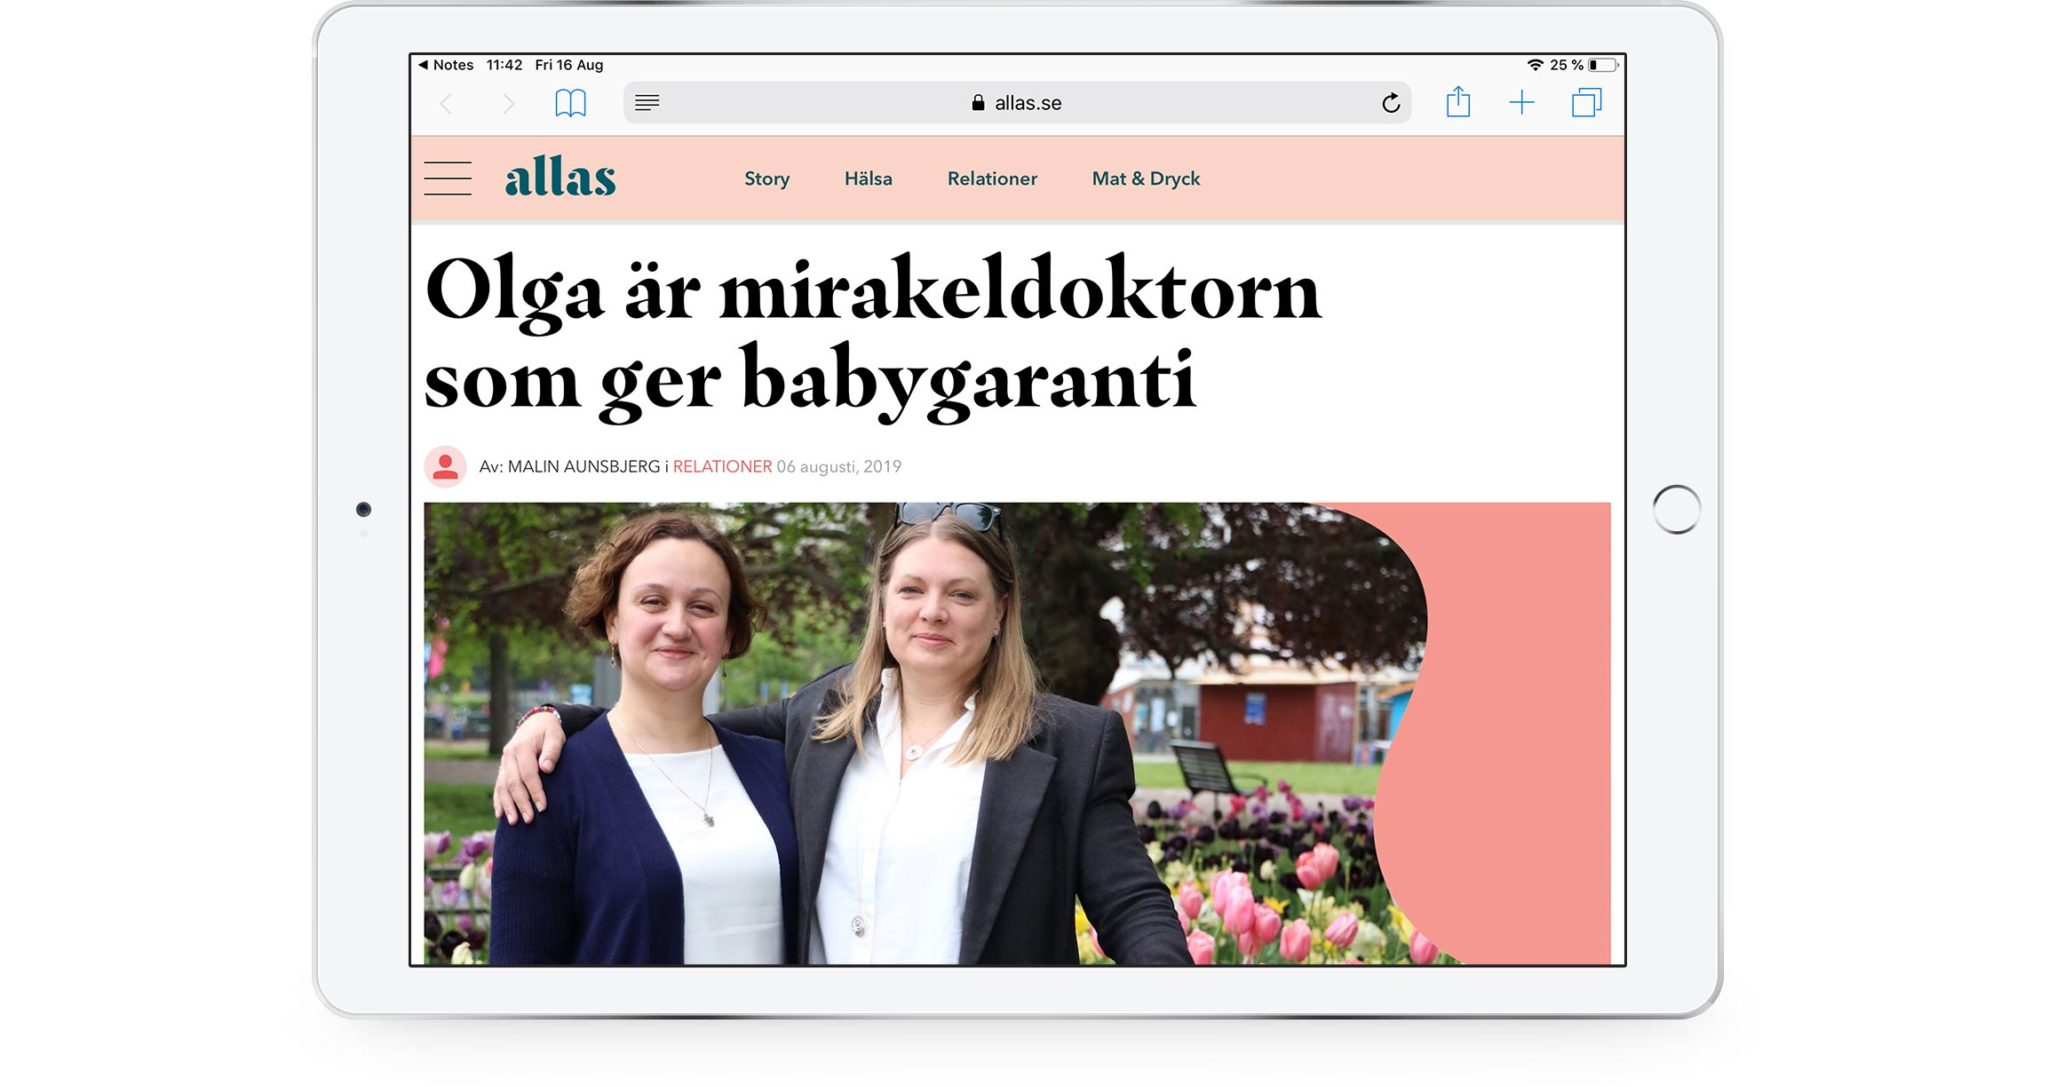 Olga is the miracle doctor who gives baby guarantee